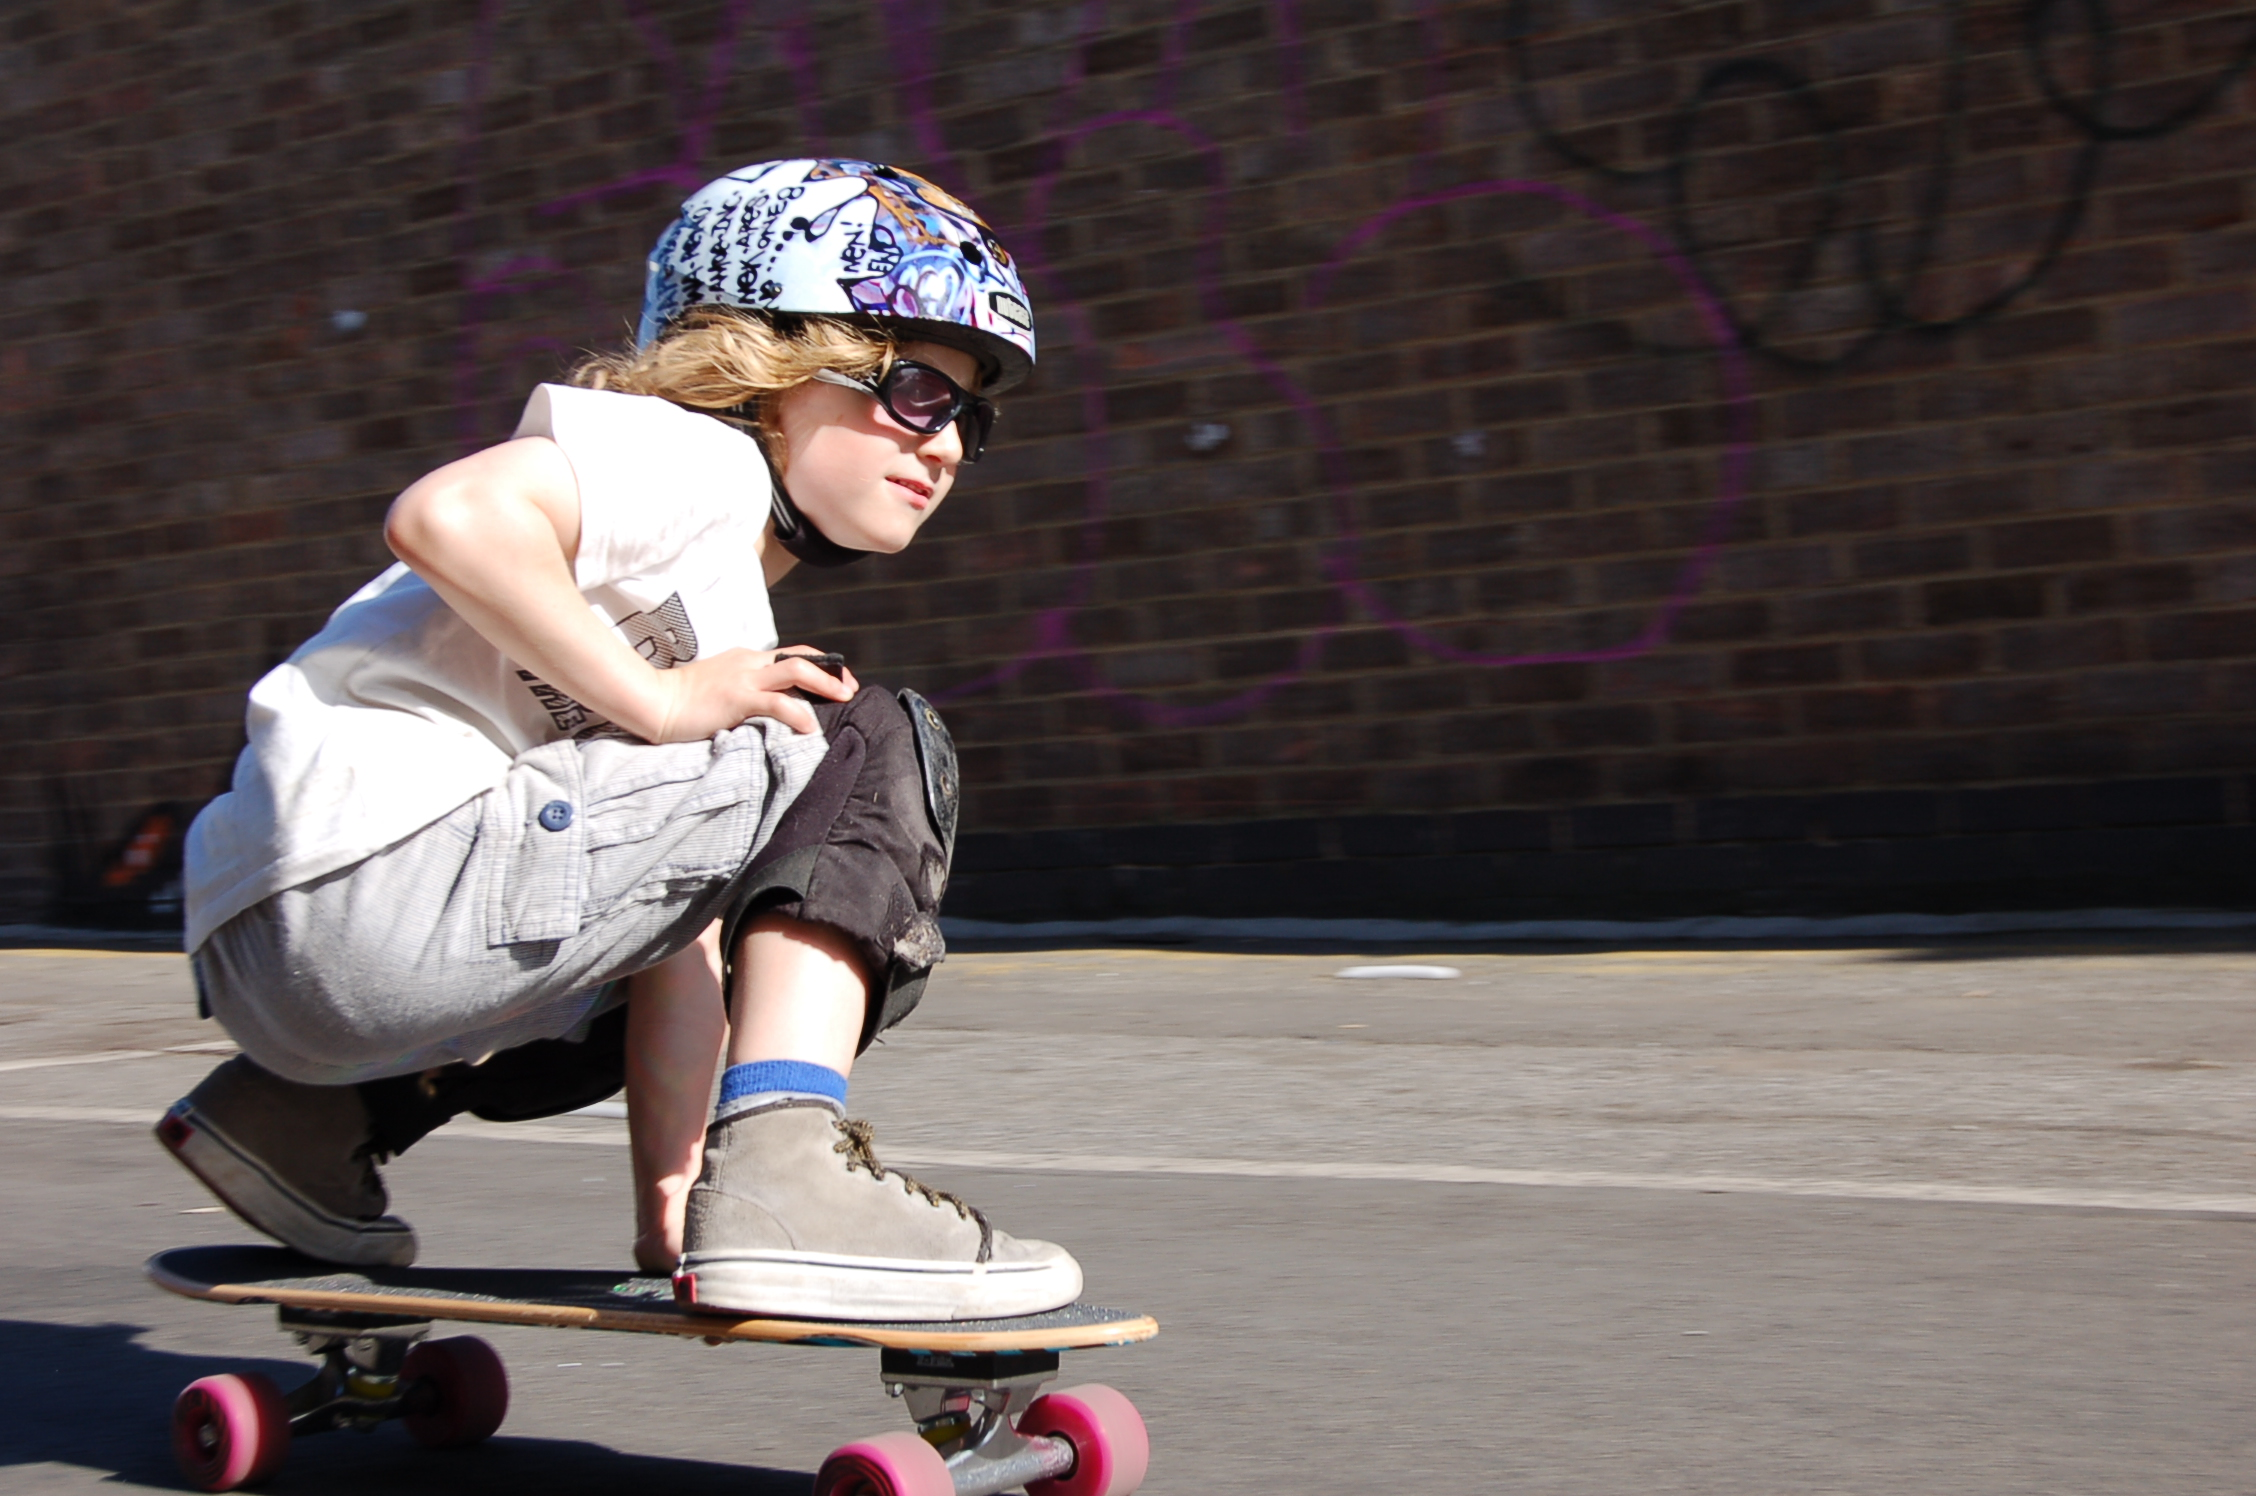 Kid skateboarding- Street Series.Jpeg